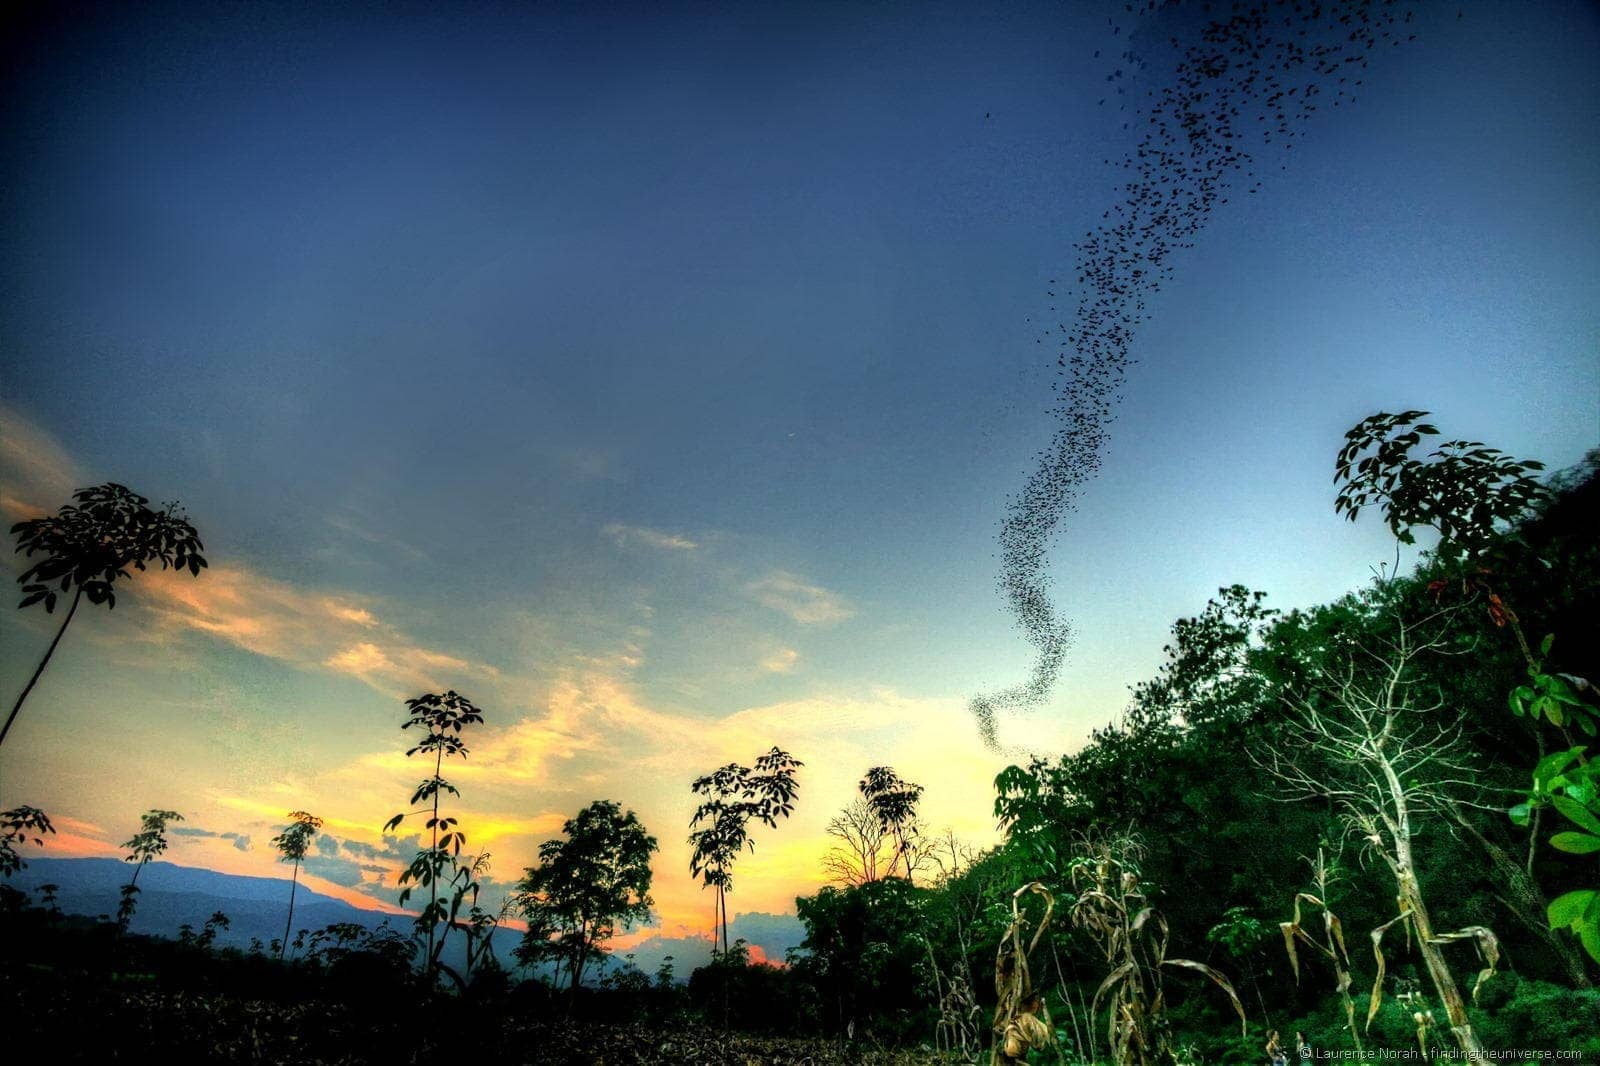 Bats emerge from cave sunset Khao Yai National Park Thailand